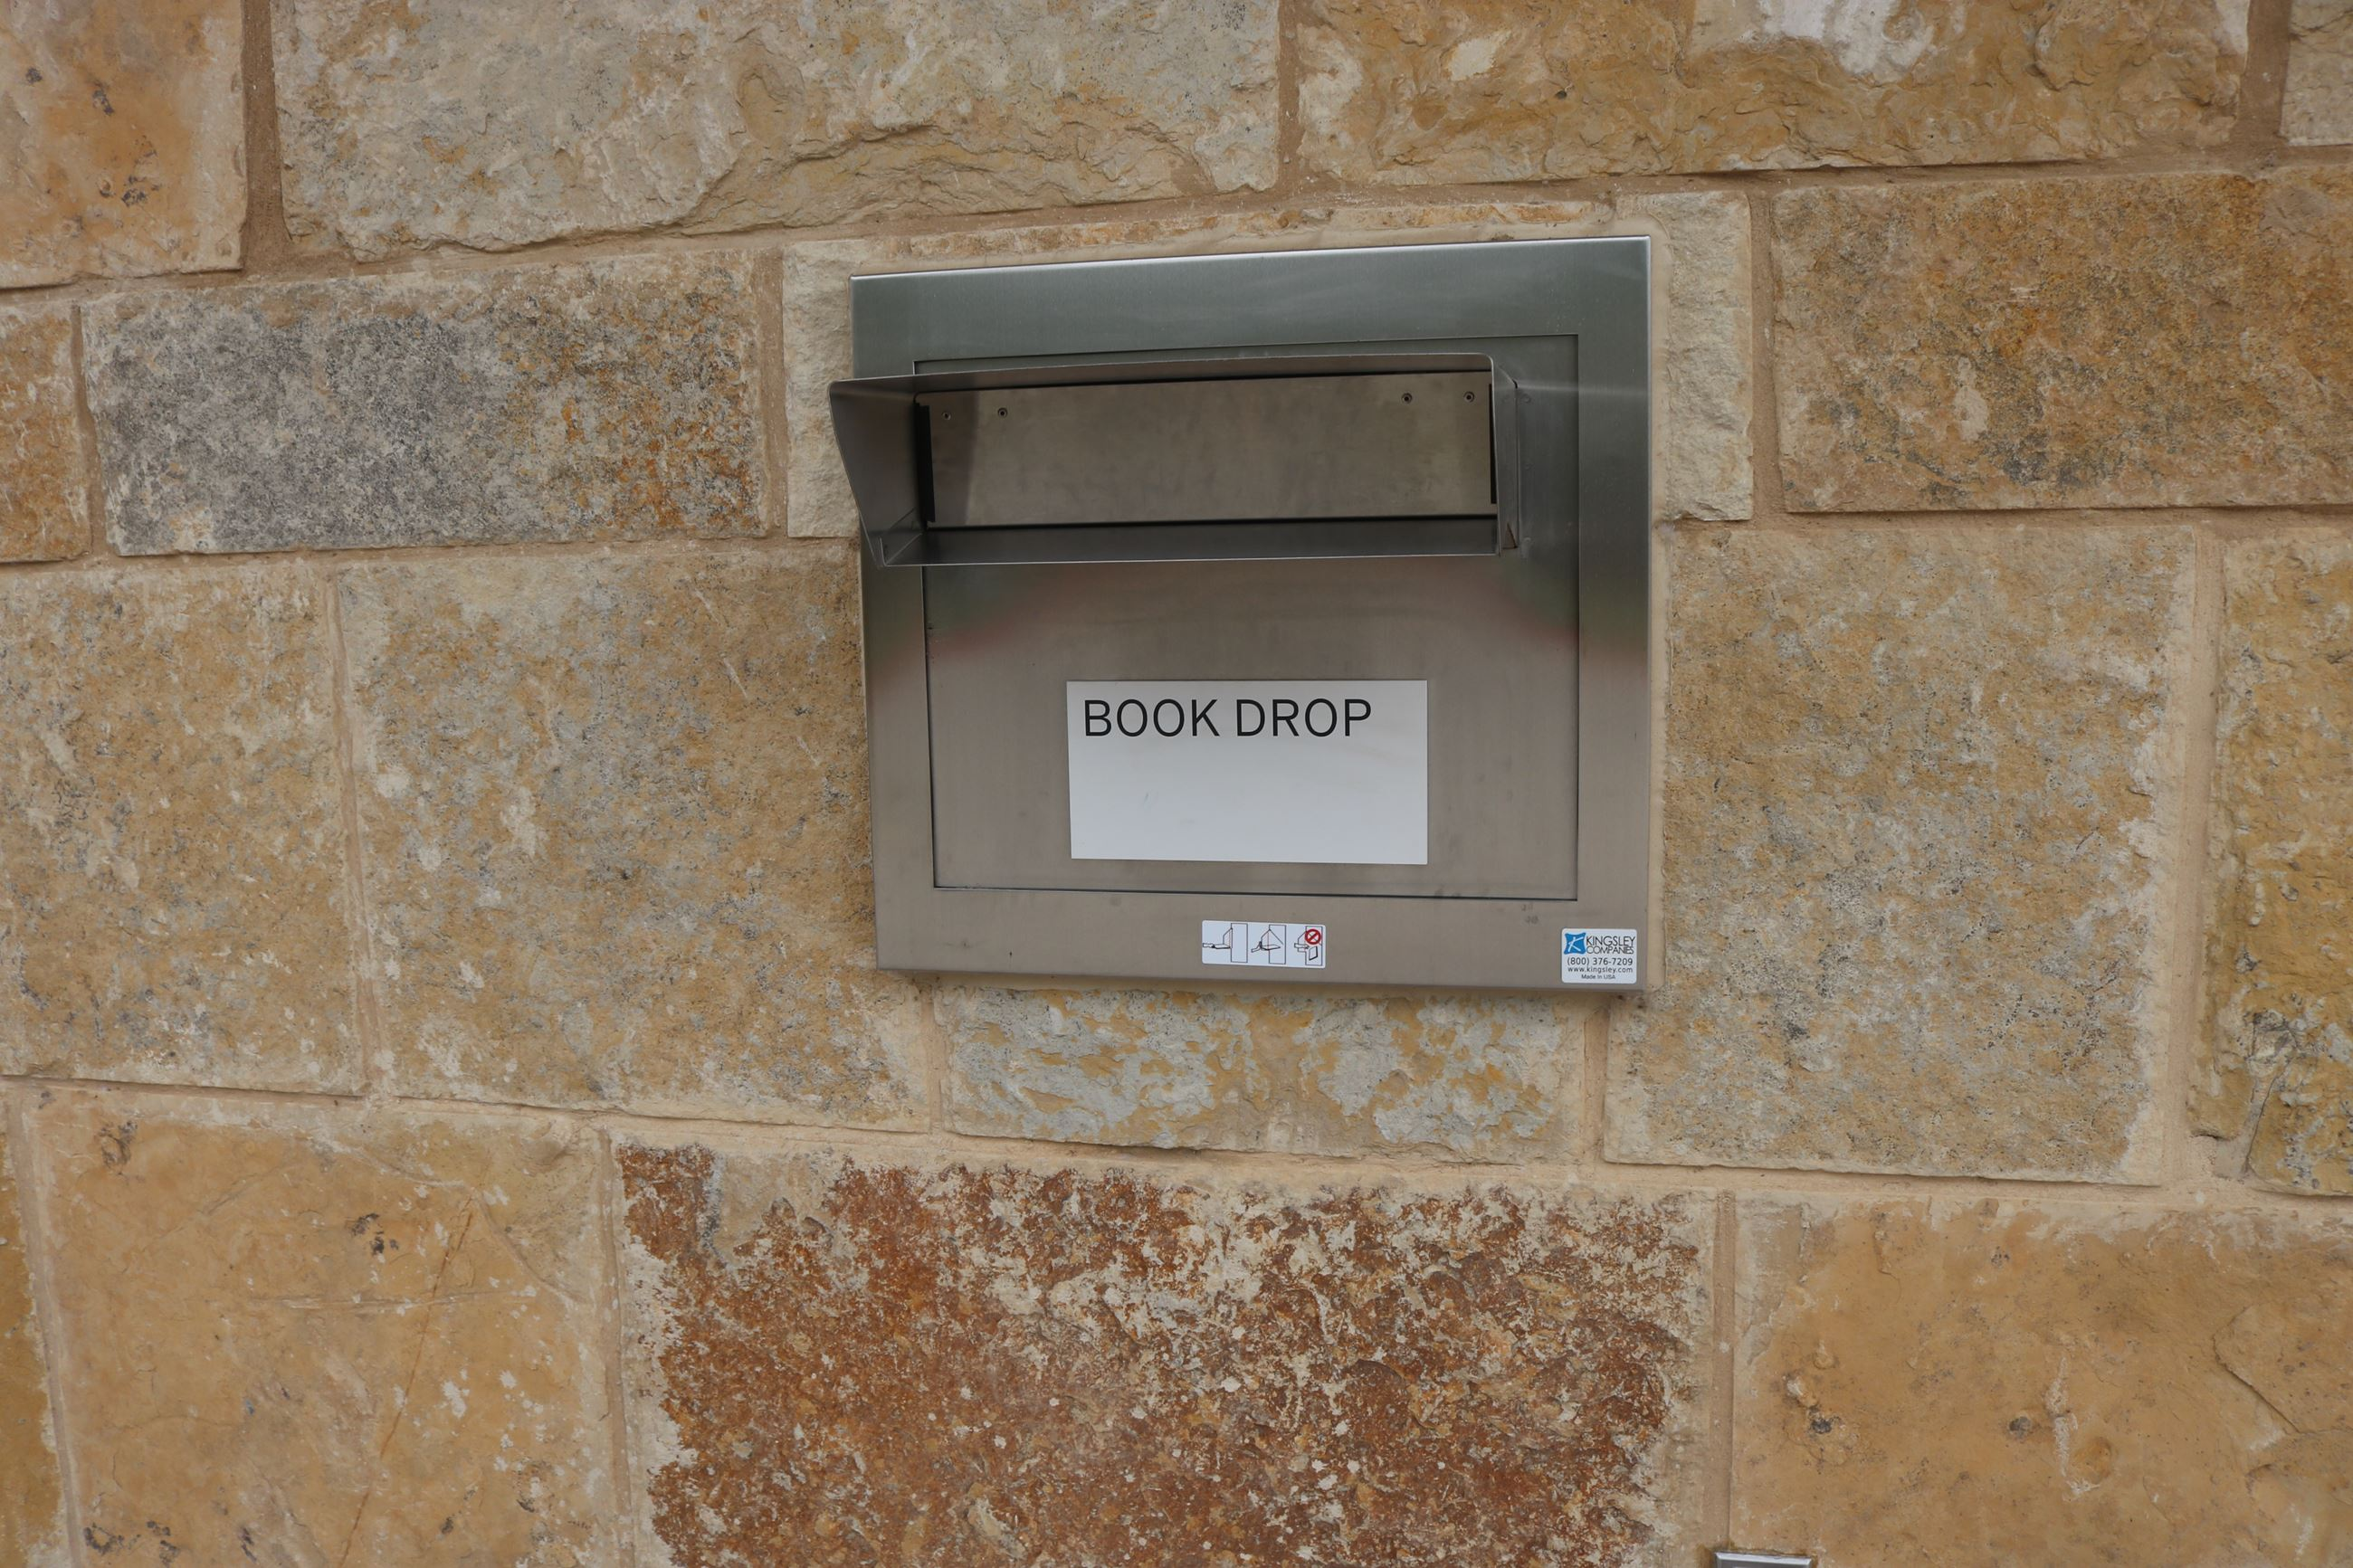 Library Drop Off